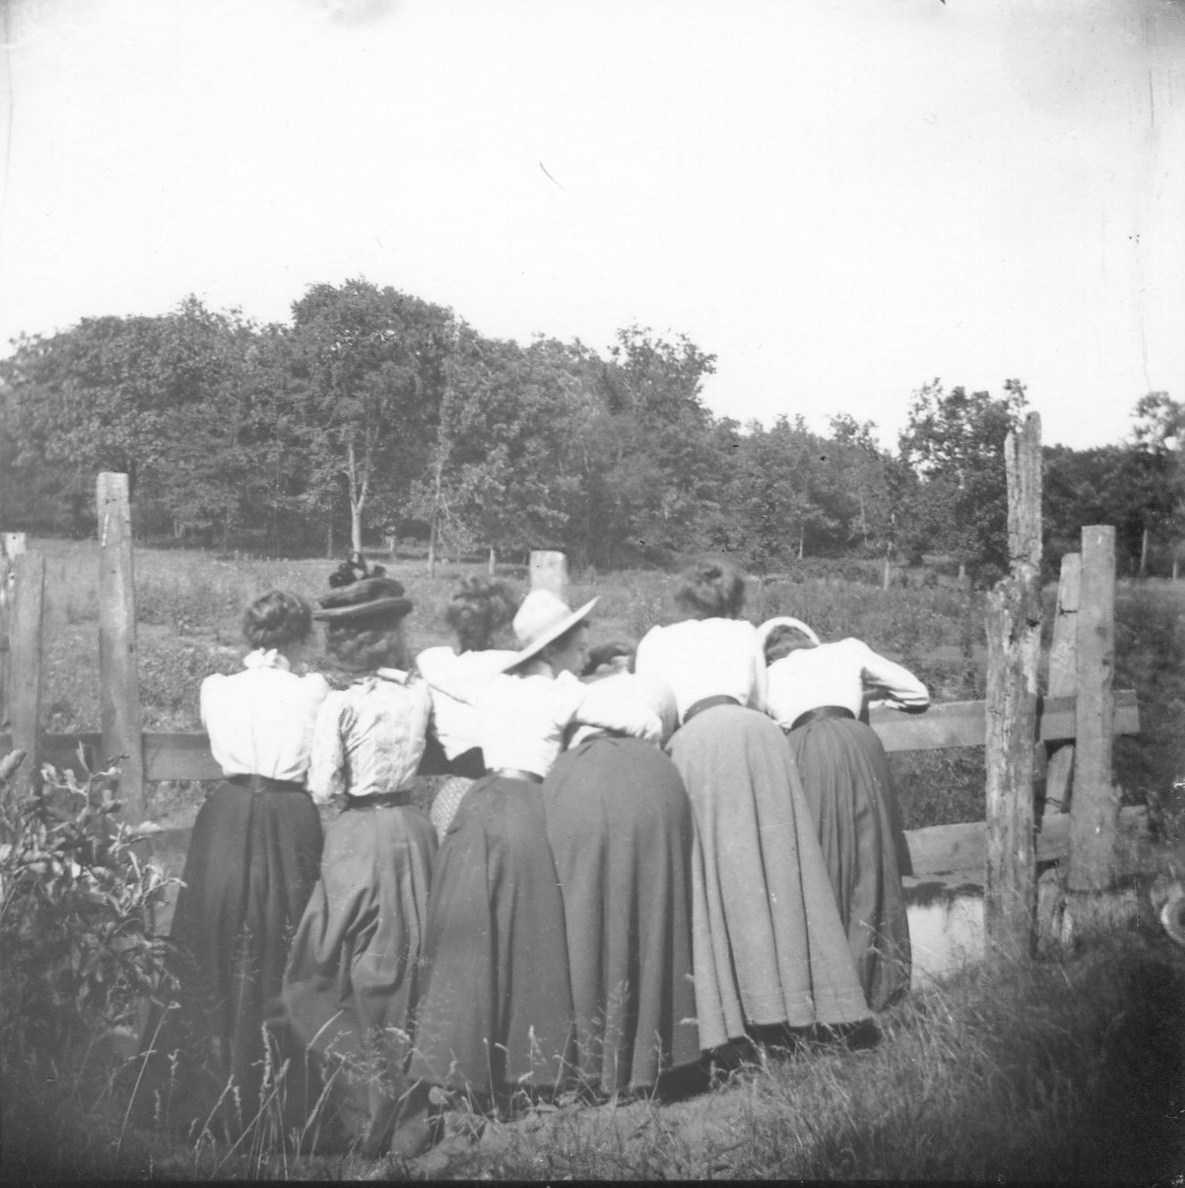 photo of Seven Unidentified Women Leaning Over a Fence